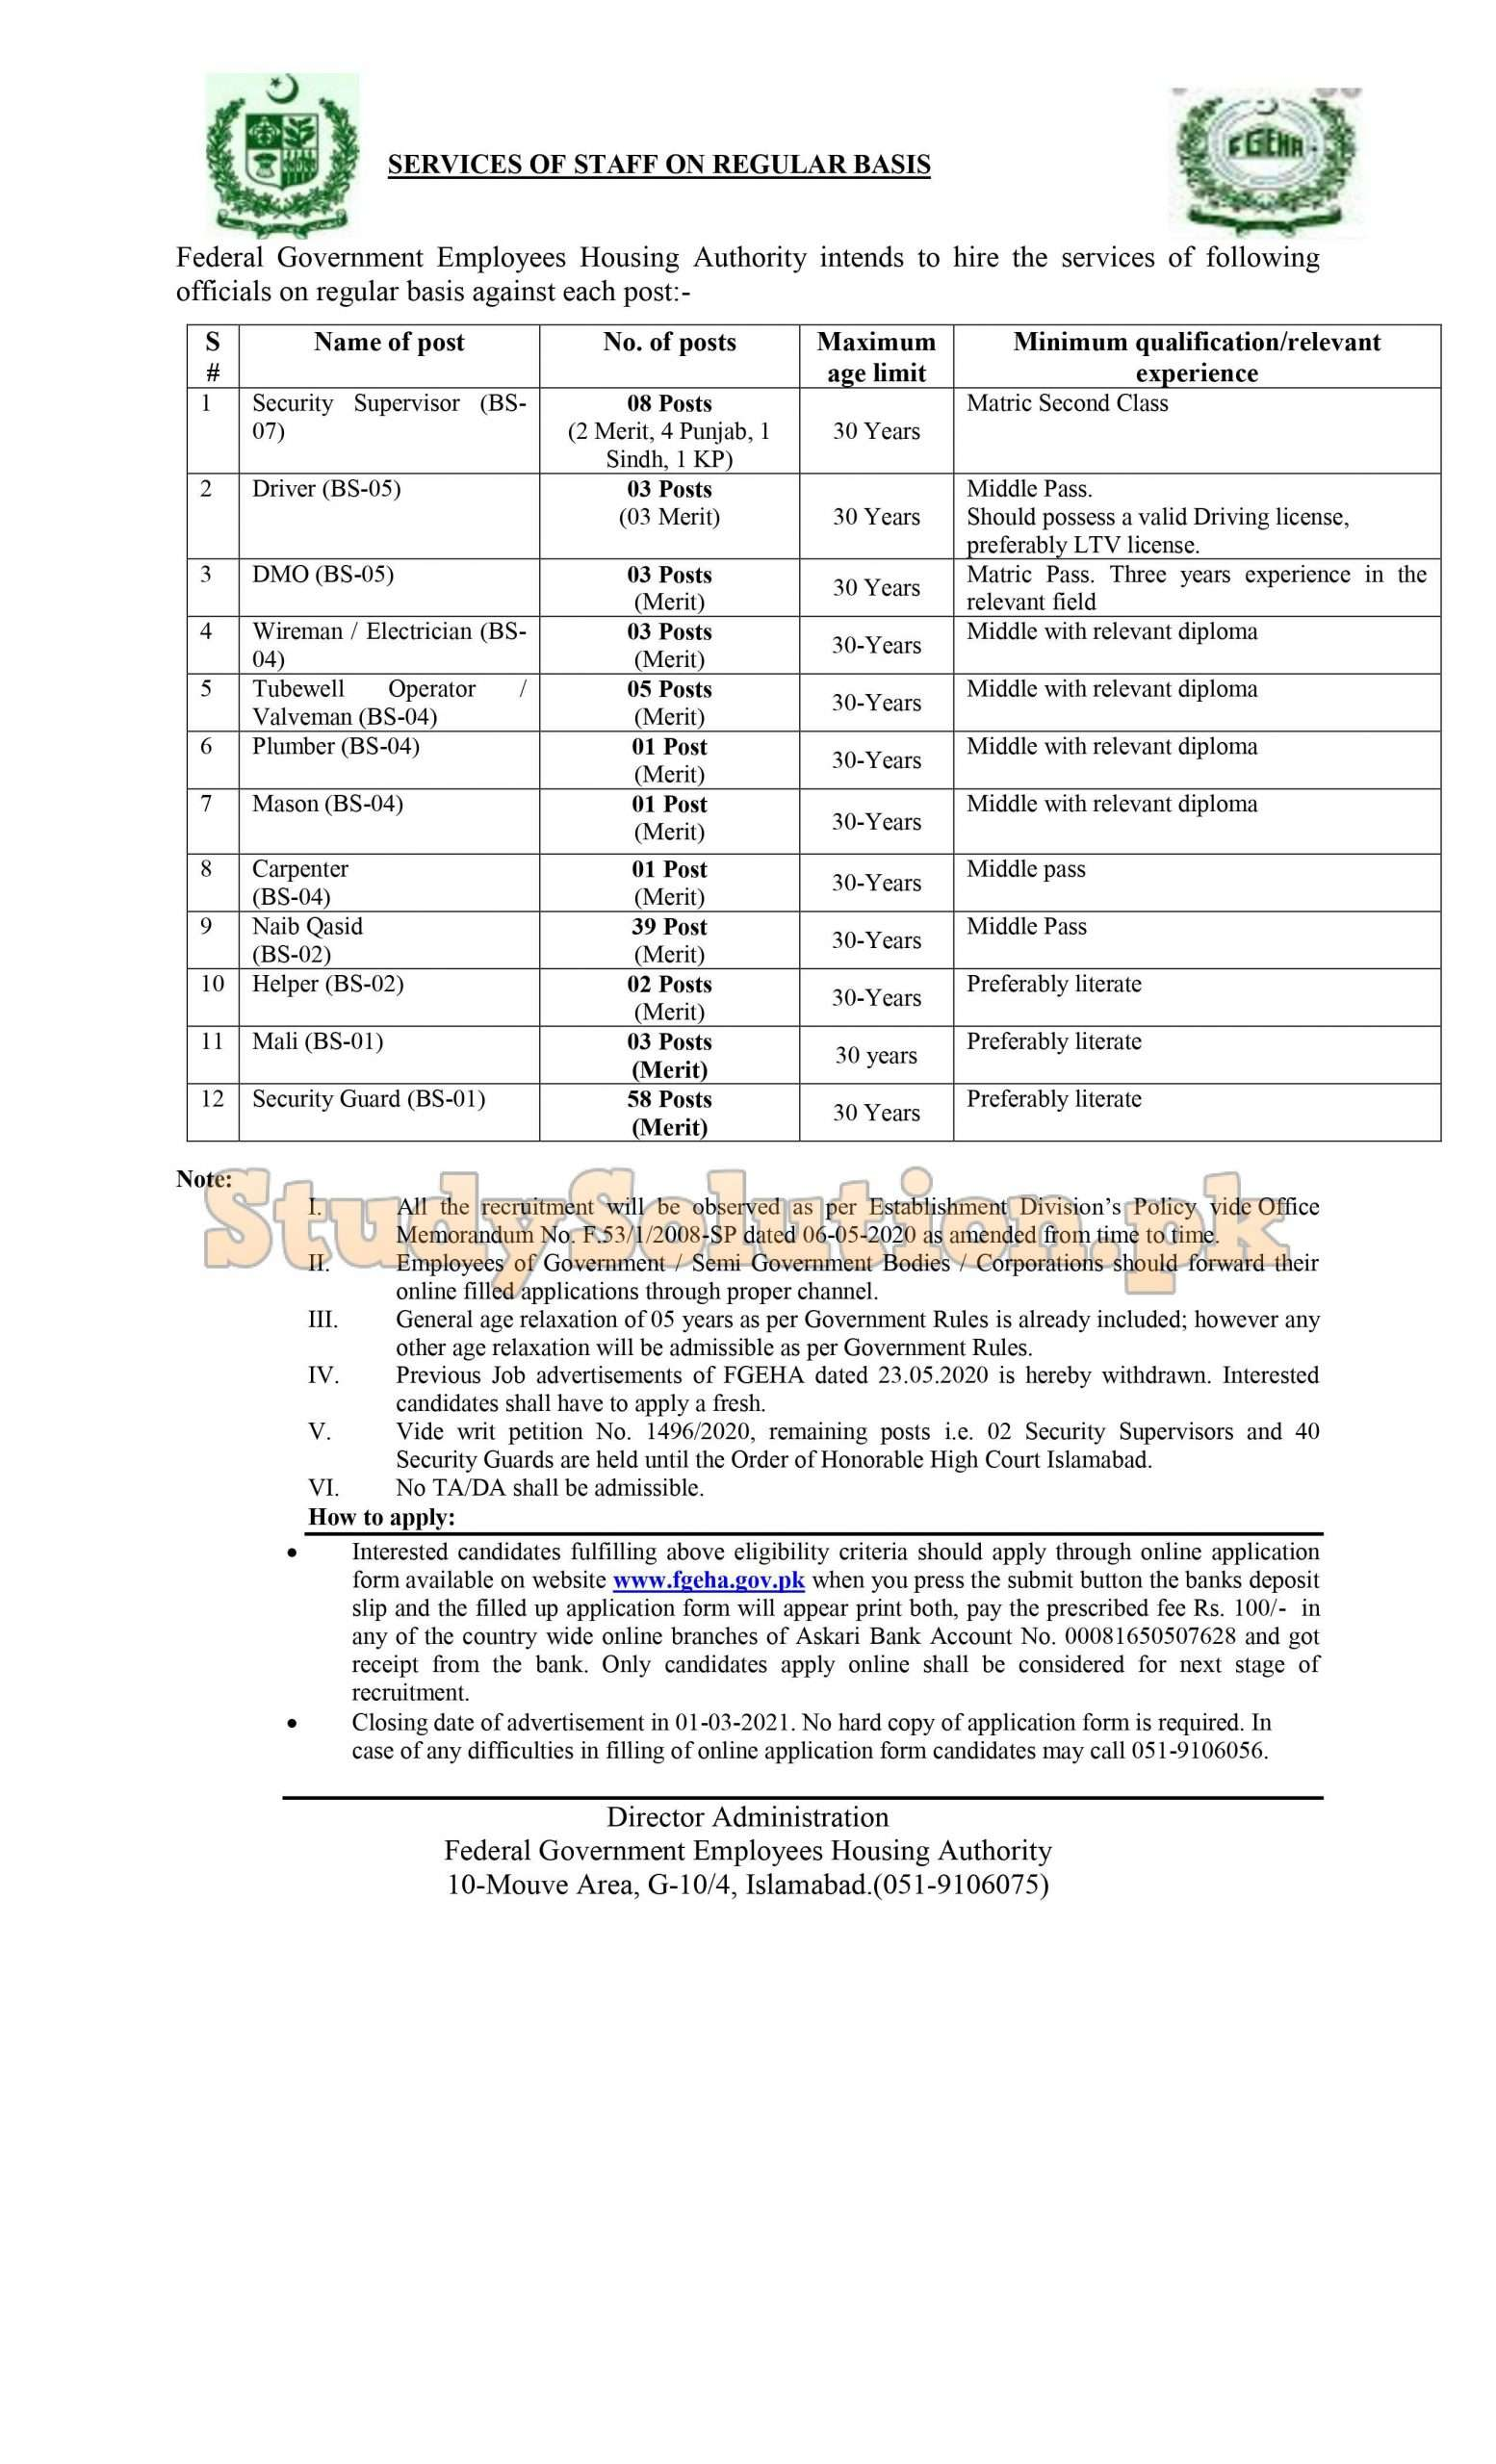 Federal Government Employees Housing Authority Latest Jobs 2021 Regular Basic